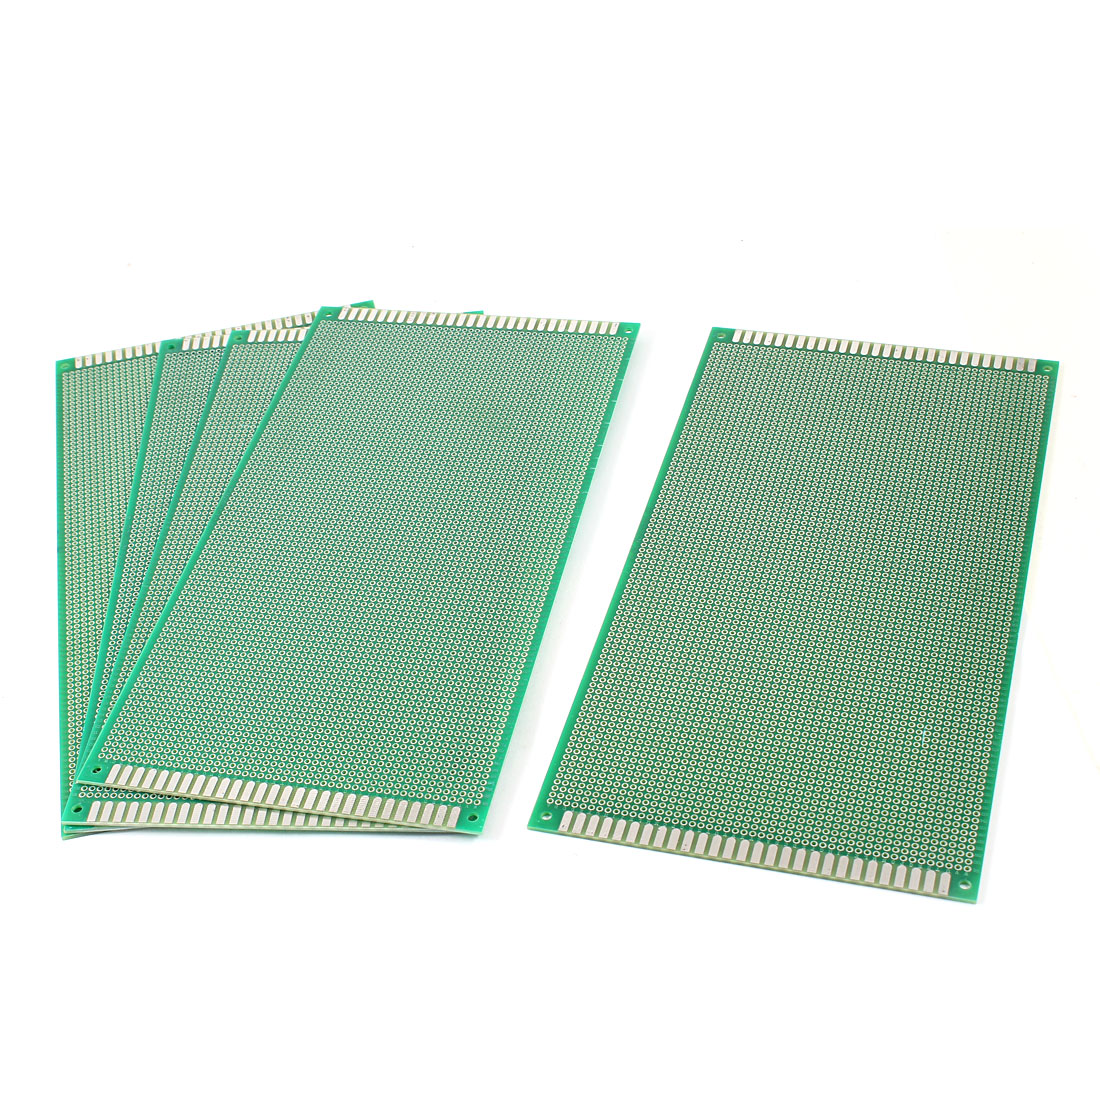 5 Pcs DIY Single Side Tinned Prototyping PCB Circuit Universal Board 13cmx25cm